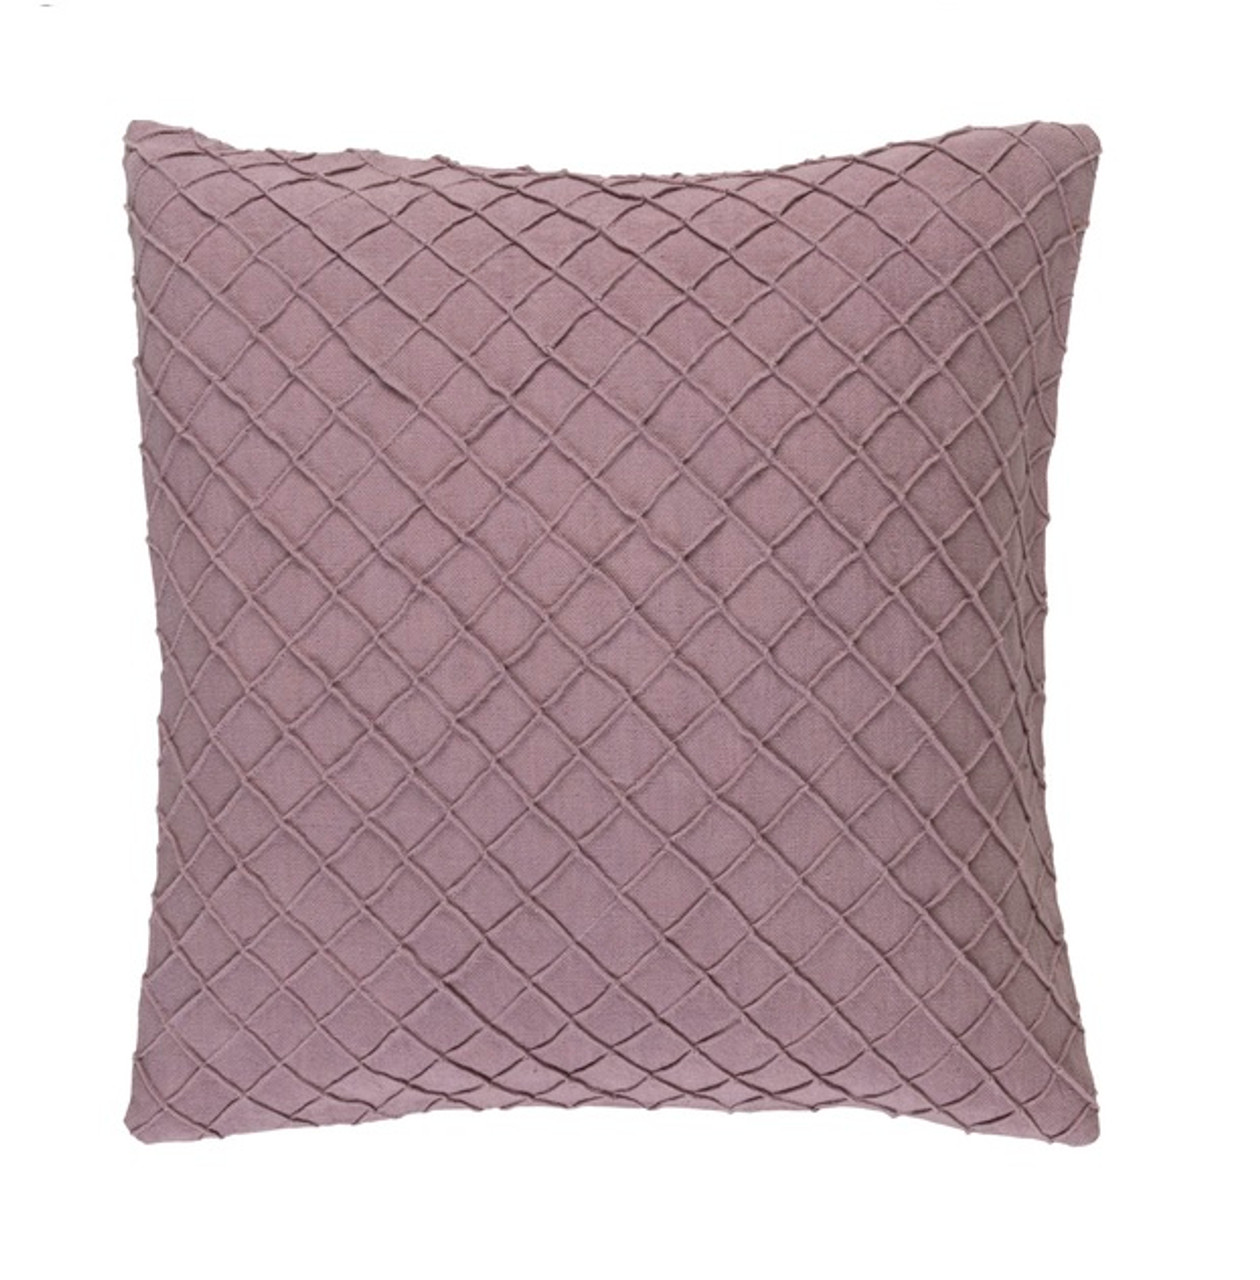 Throw Pillow Fillers : 18? Purple Mauve Woven Decorative Throw Pillow-Down Filler Christmas Central